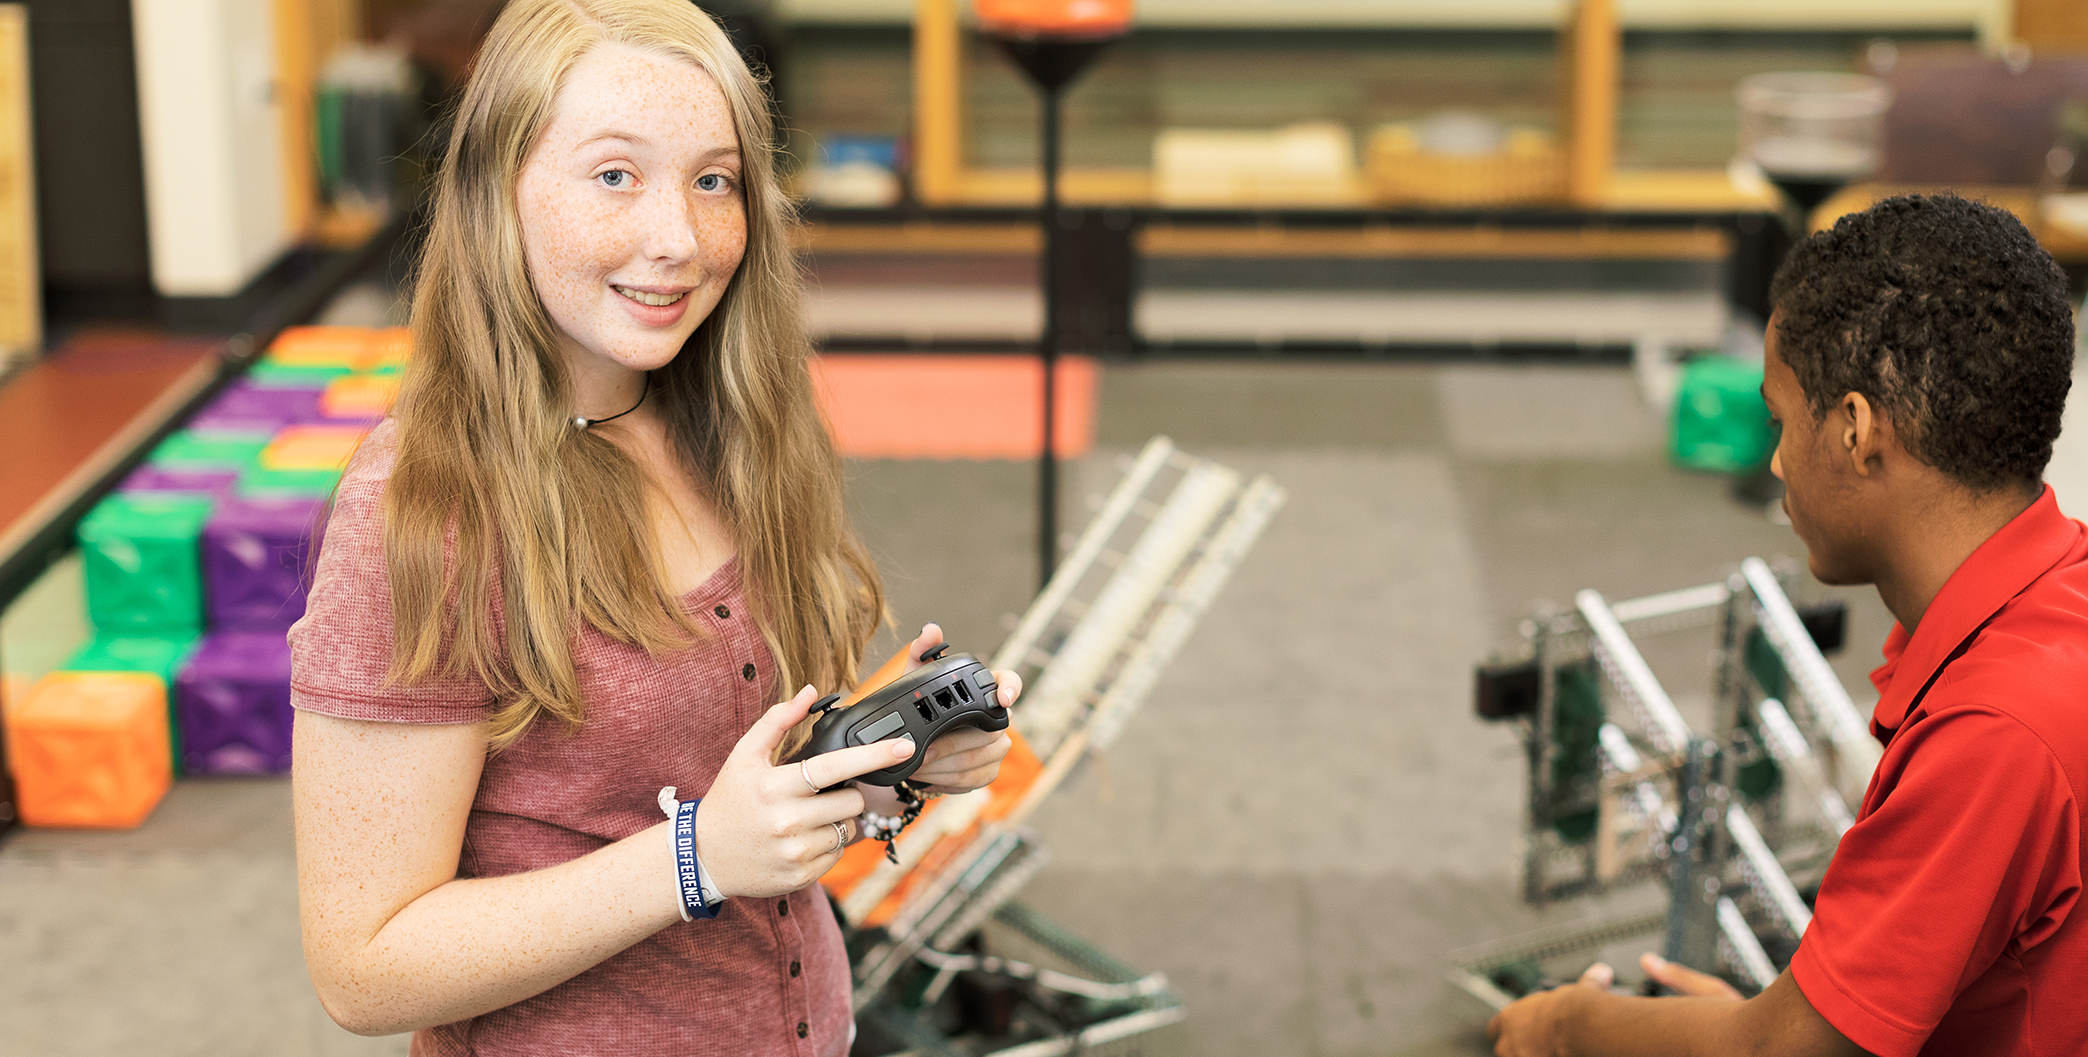 girl stands with robotics remote control in a makerspace